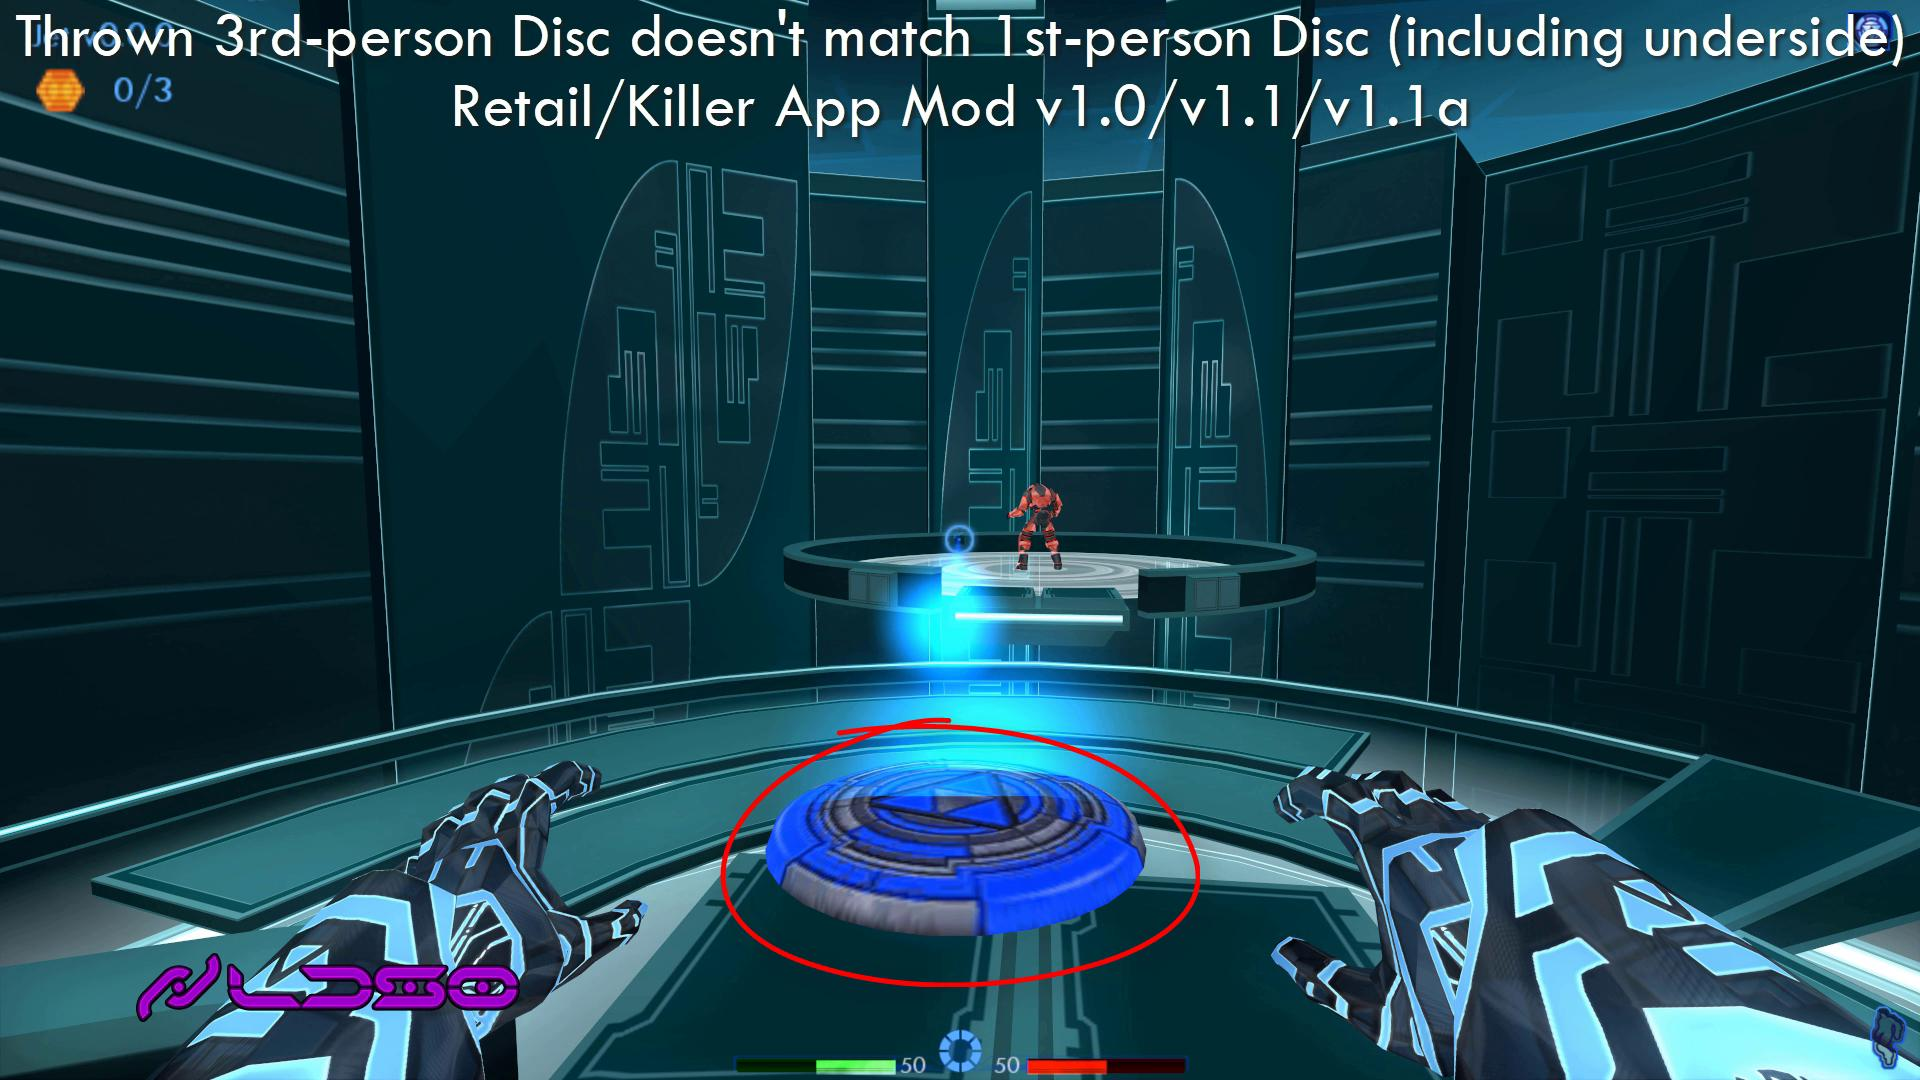 Jet's thrown third-person discs don't look the same as first-person